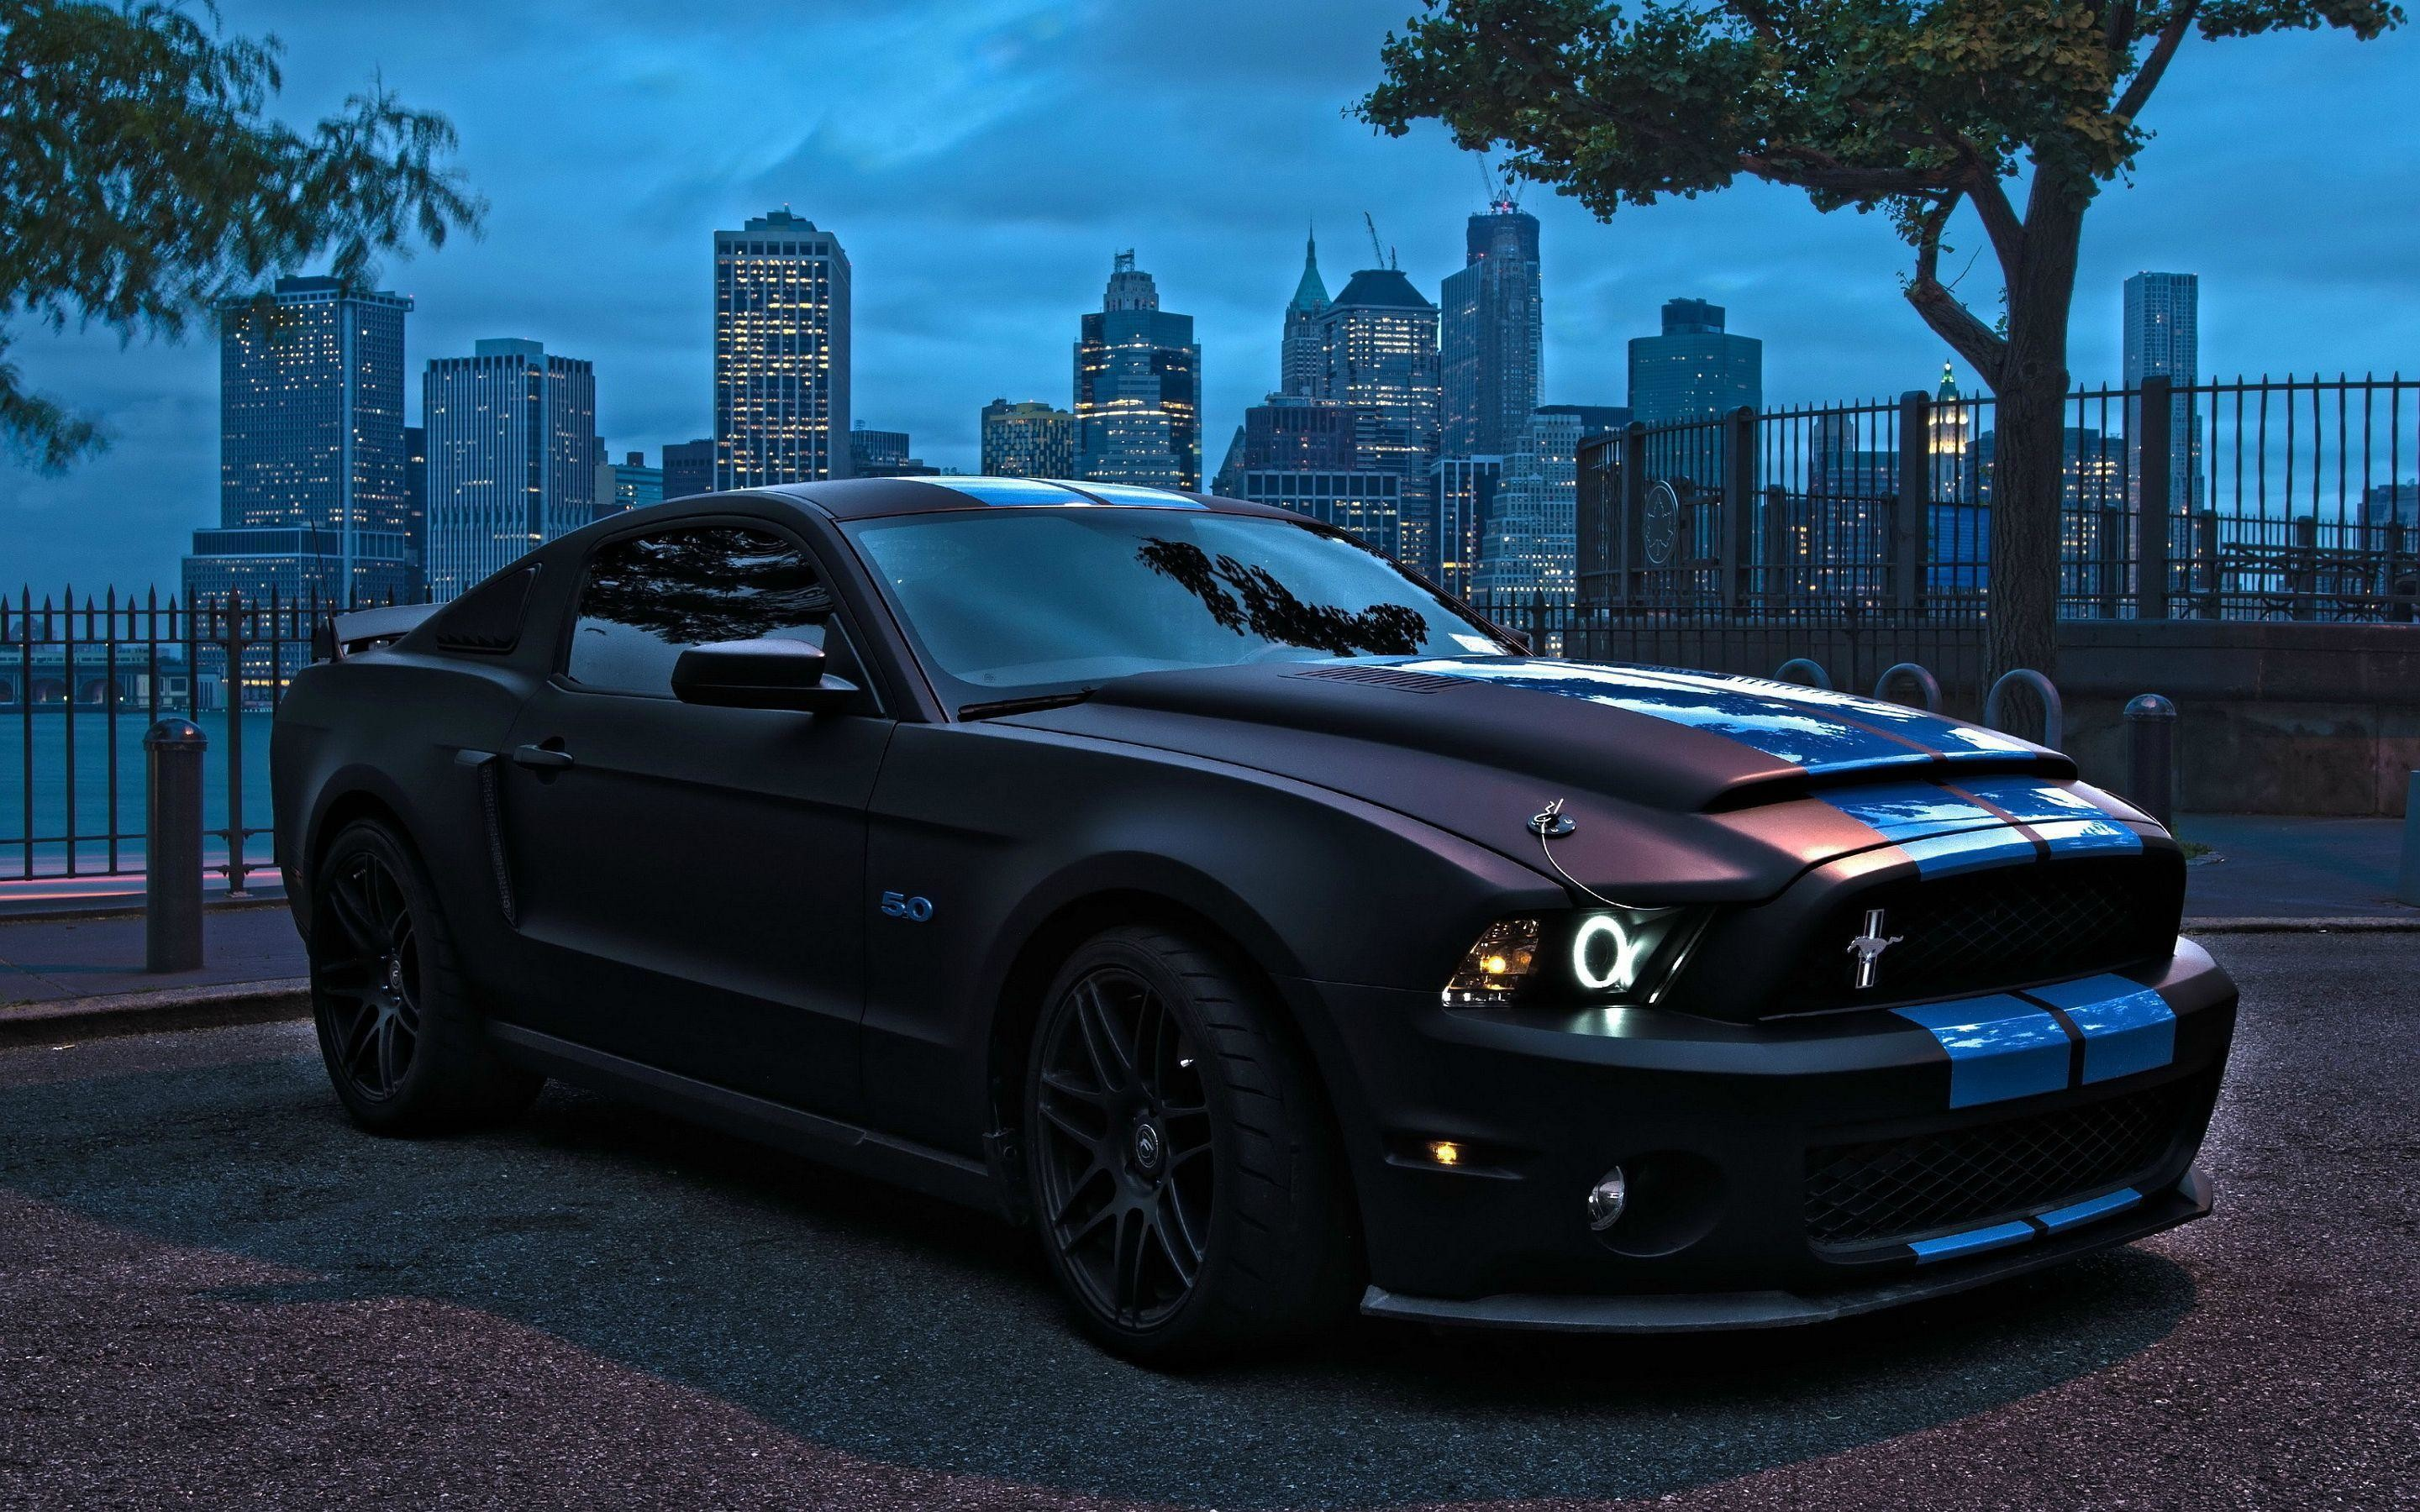 2018 Ford Mustang Shelby Wallpaper 61 Images